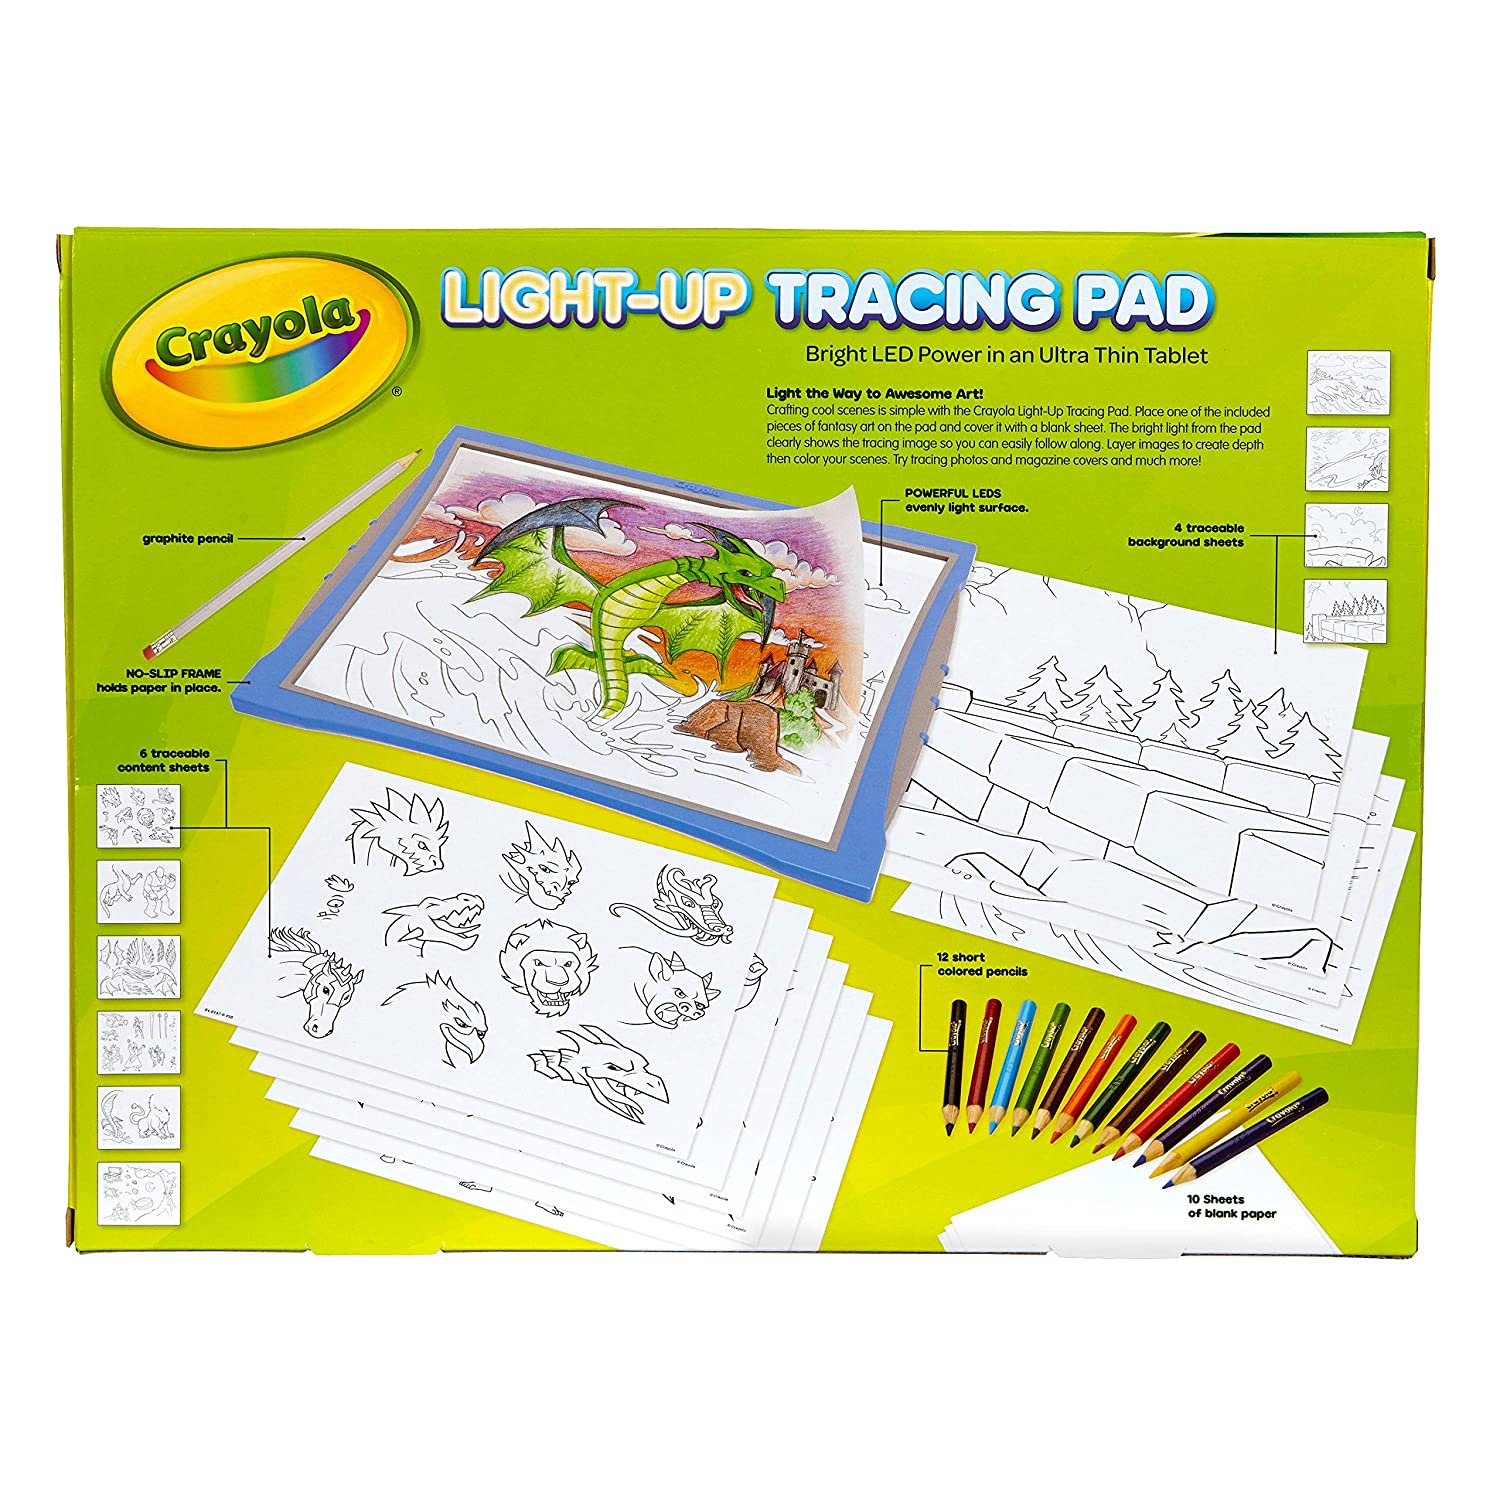 BLUE BRIGHT LED POWER in an Ultra Thin Tablet NEWEST MODEL Crayola Light Up Tracing Pad